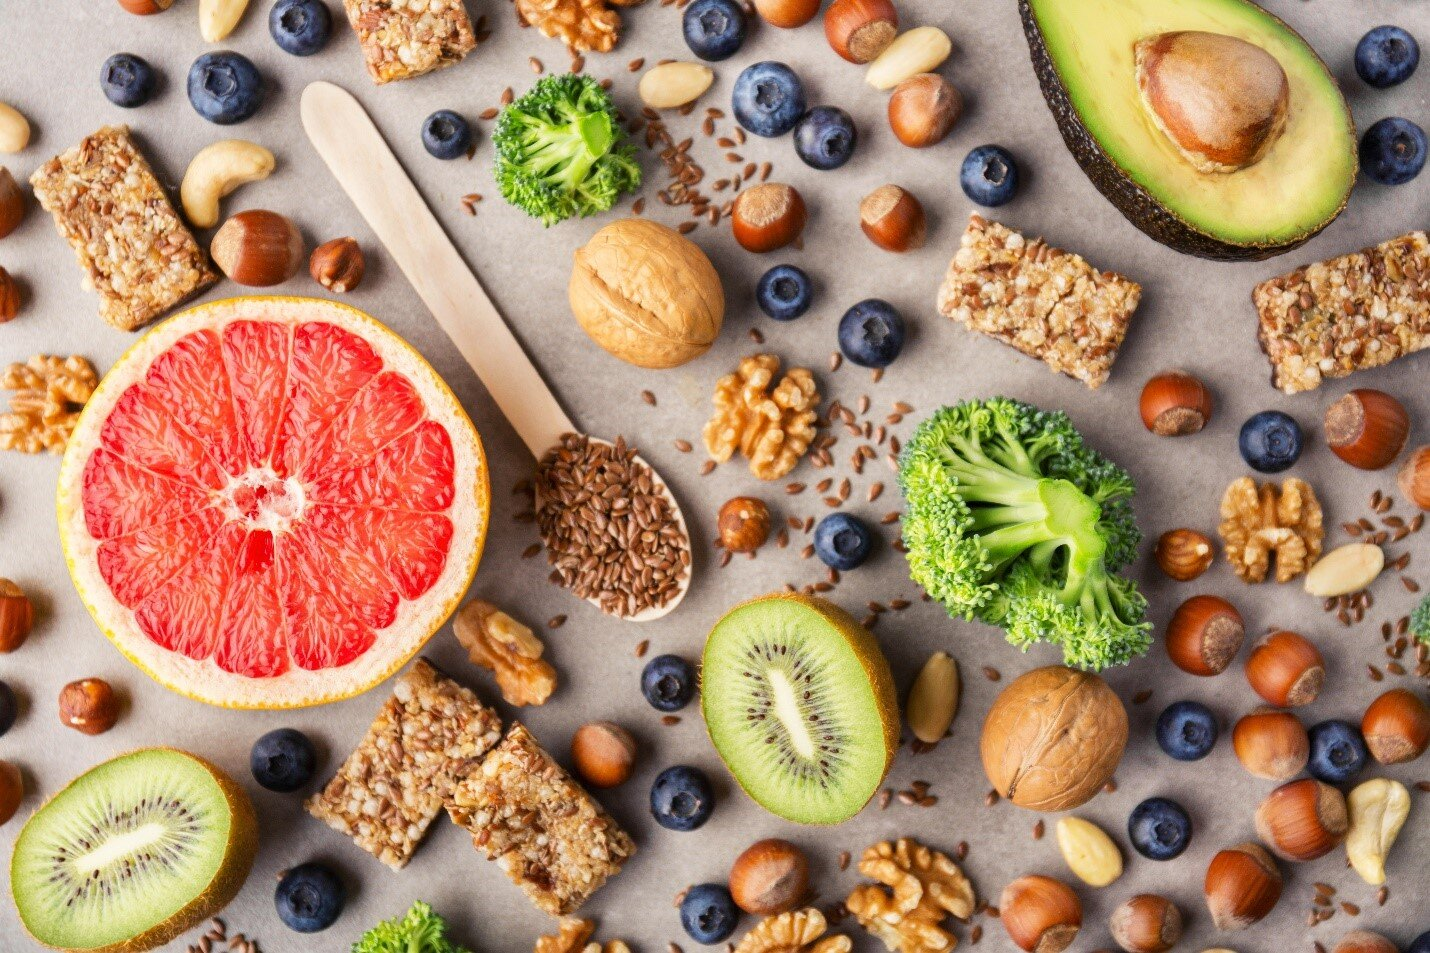 Best Foods to Boost Brain and Memory Function for Seniors